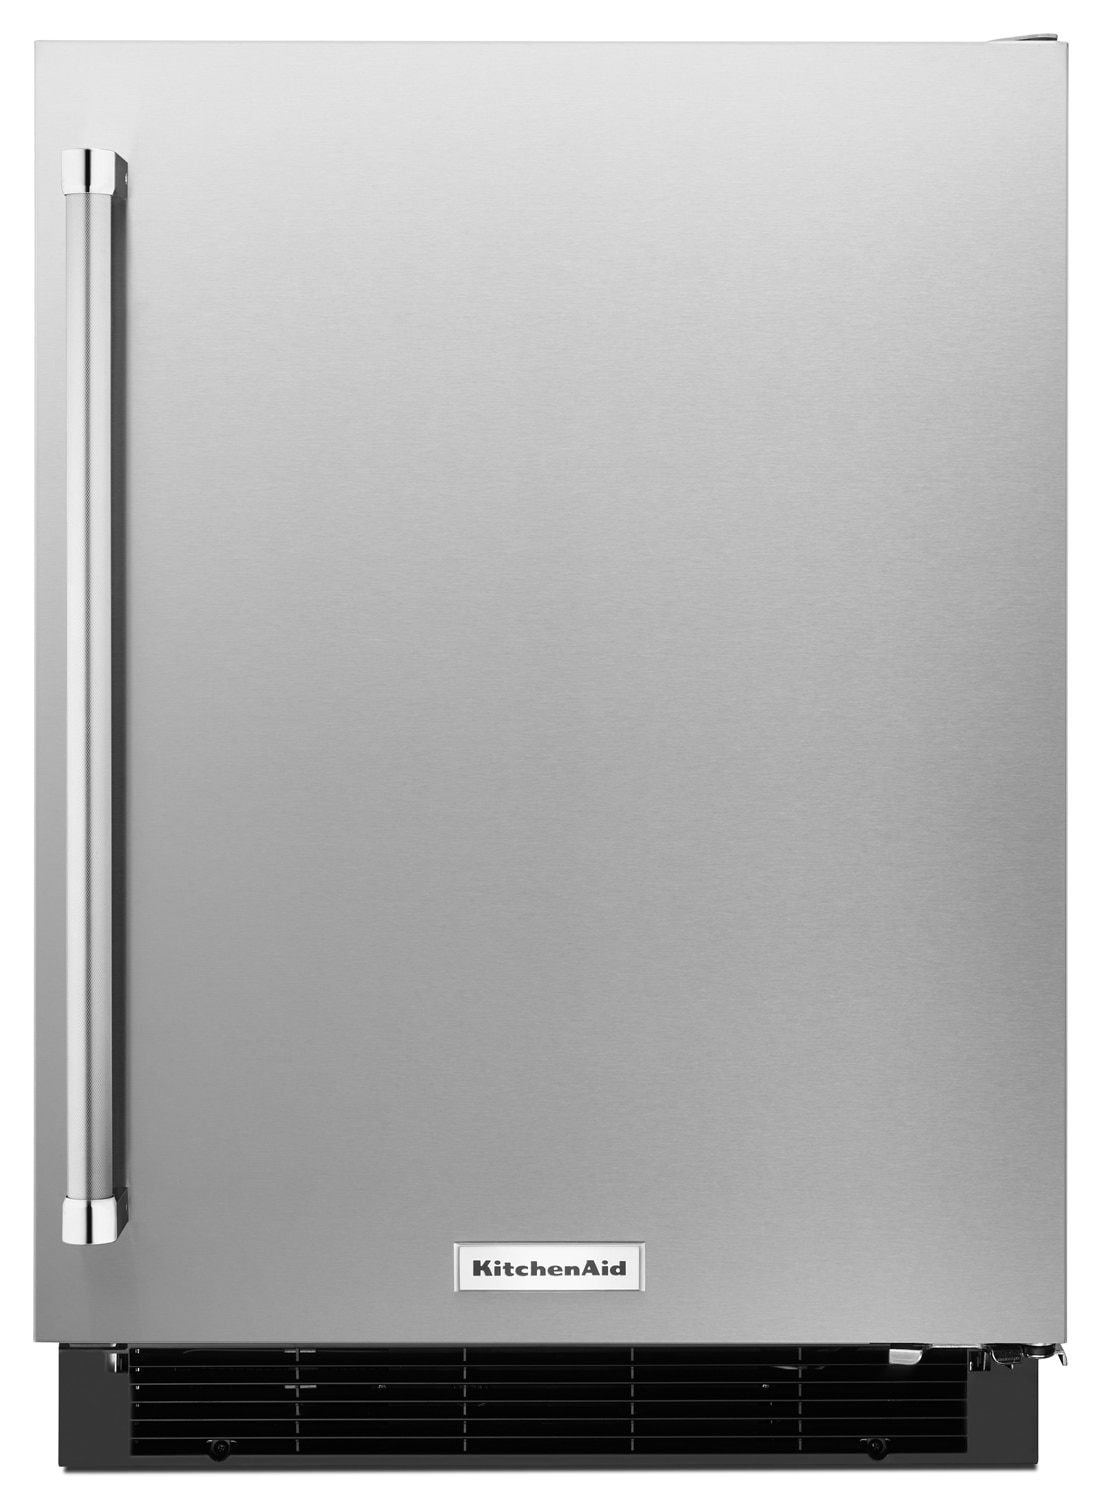 KitchenAid 4.9 Cu. Ft. Undercounter Refrigerator with Right Door Swing - Stainless Steel